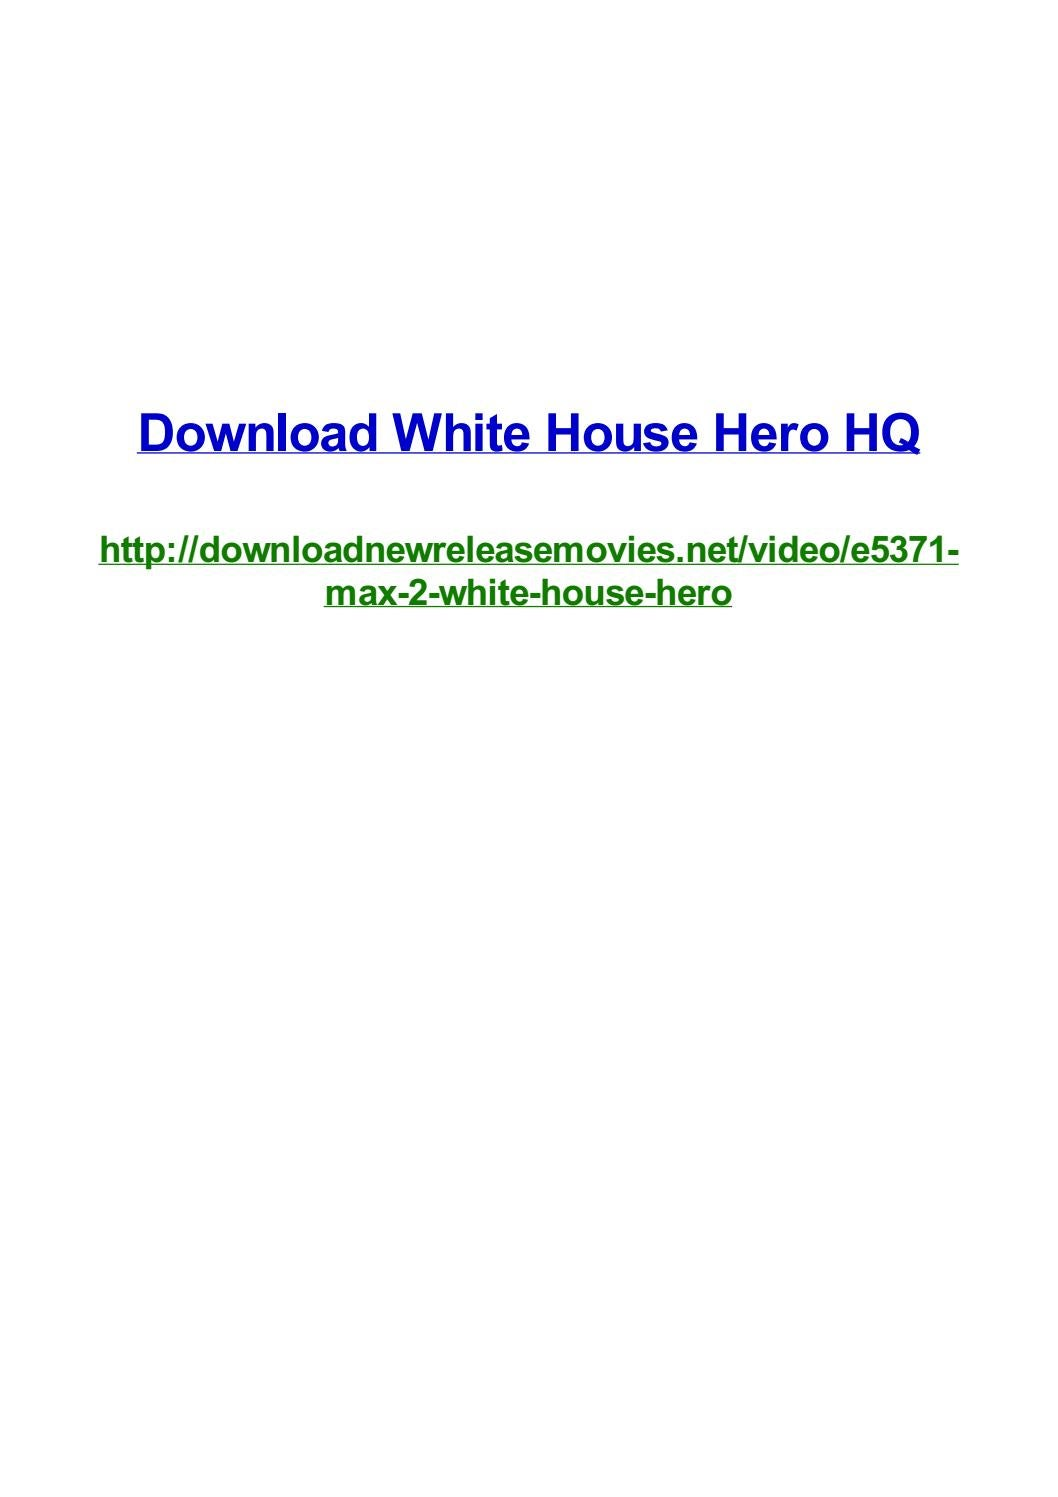 Download white house hero hq by Frank Seamons - issuu